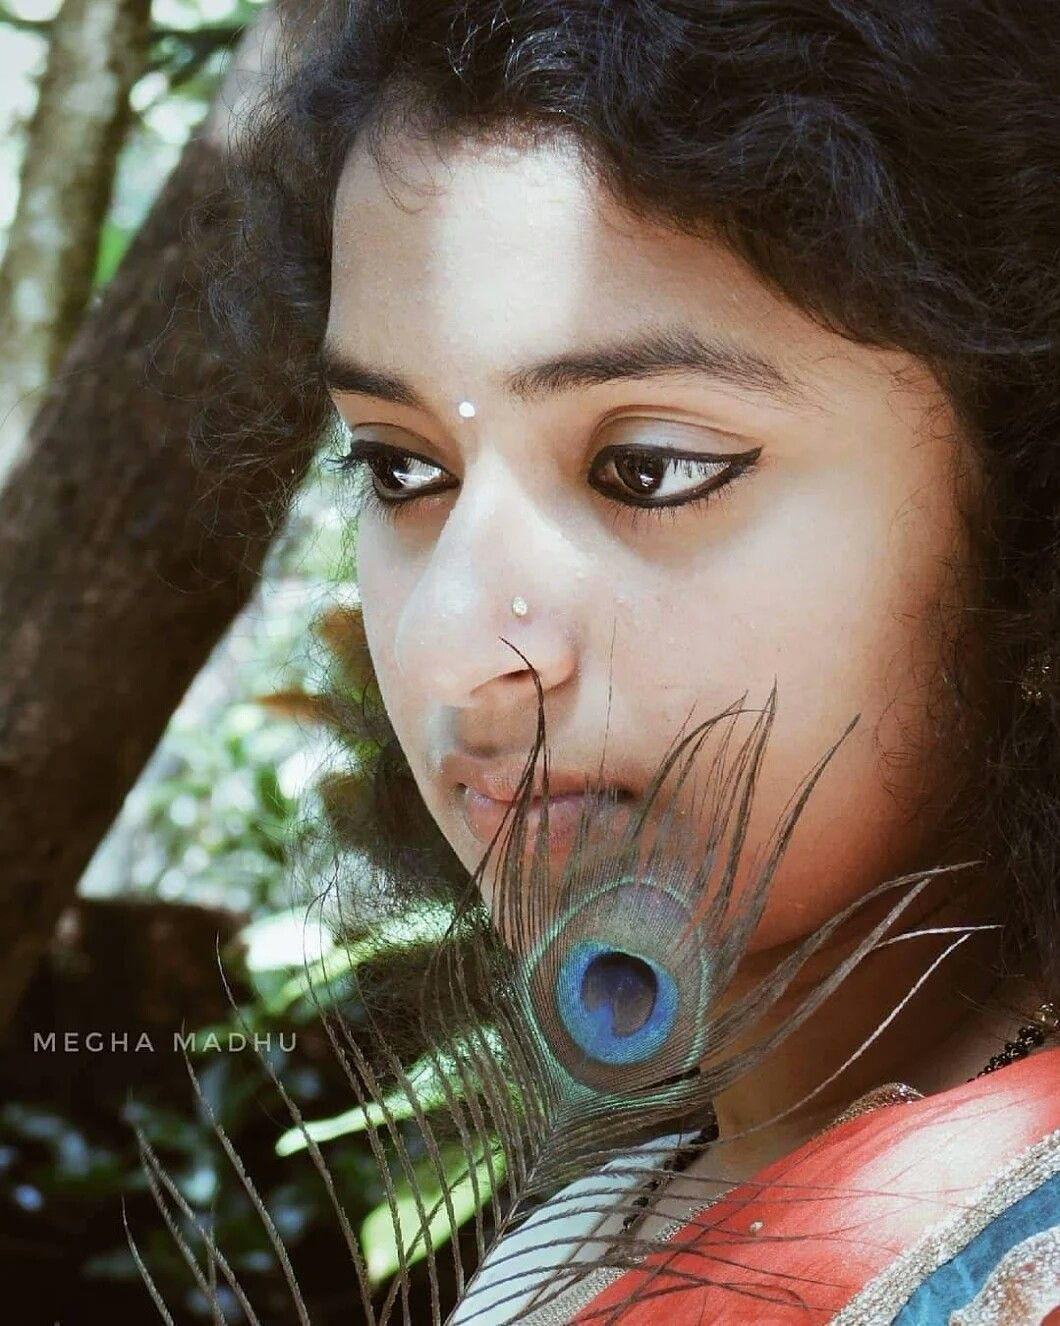 Pin By Savitha P On Cute Pictures Girl Photography Poses Girl